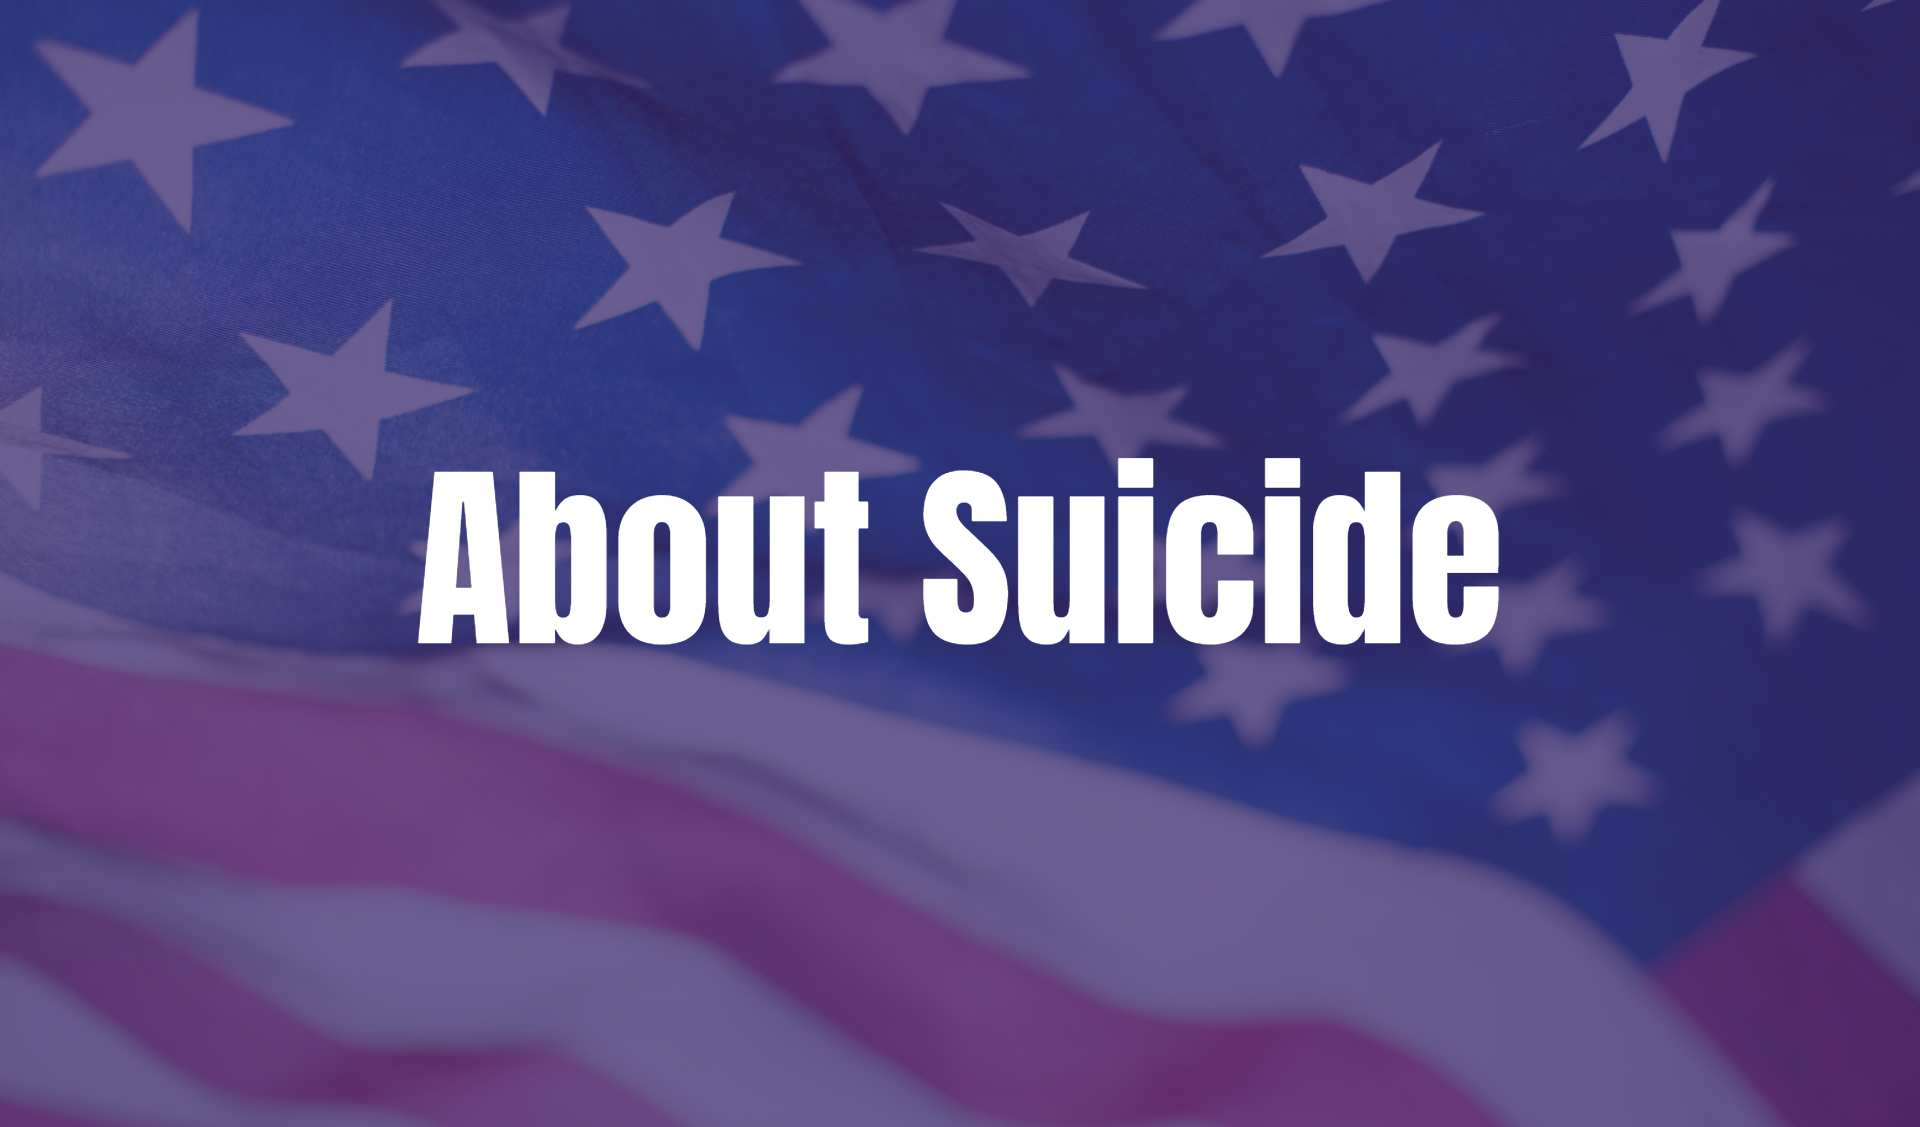 About Suicide text on an American flag background